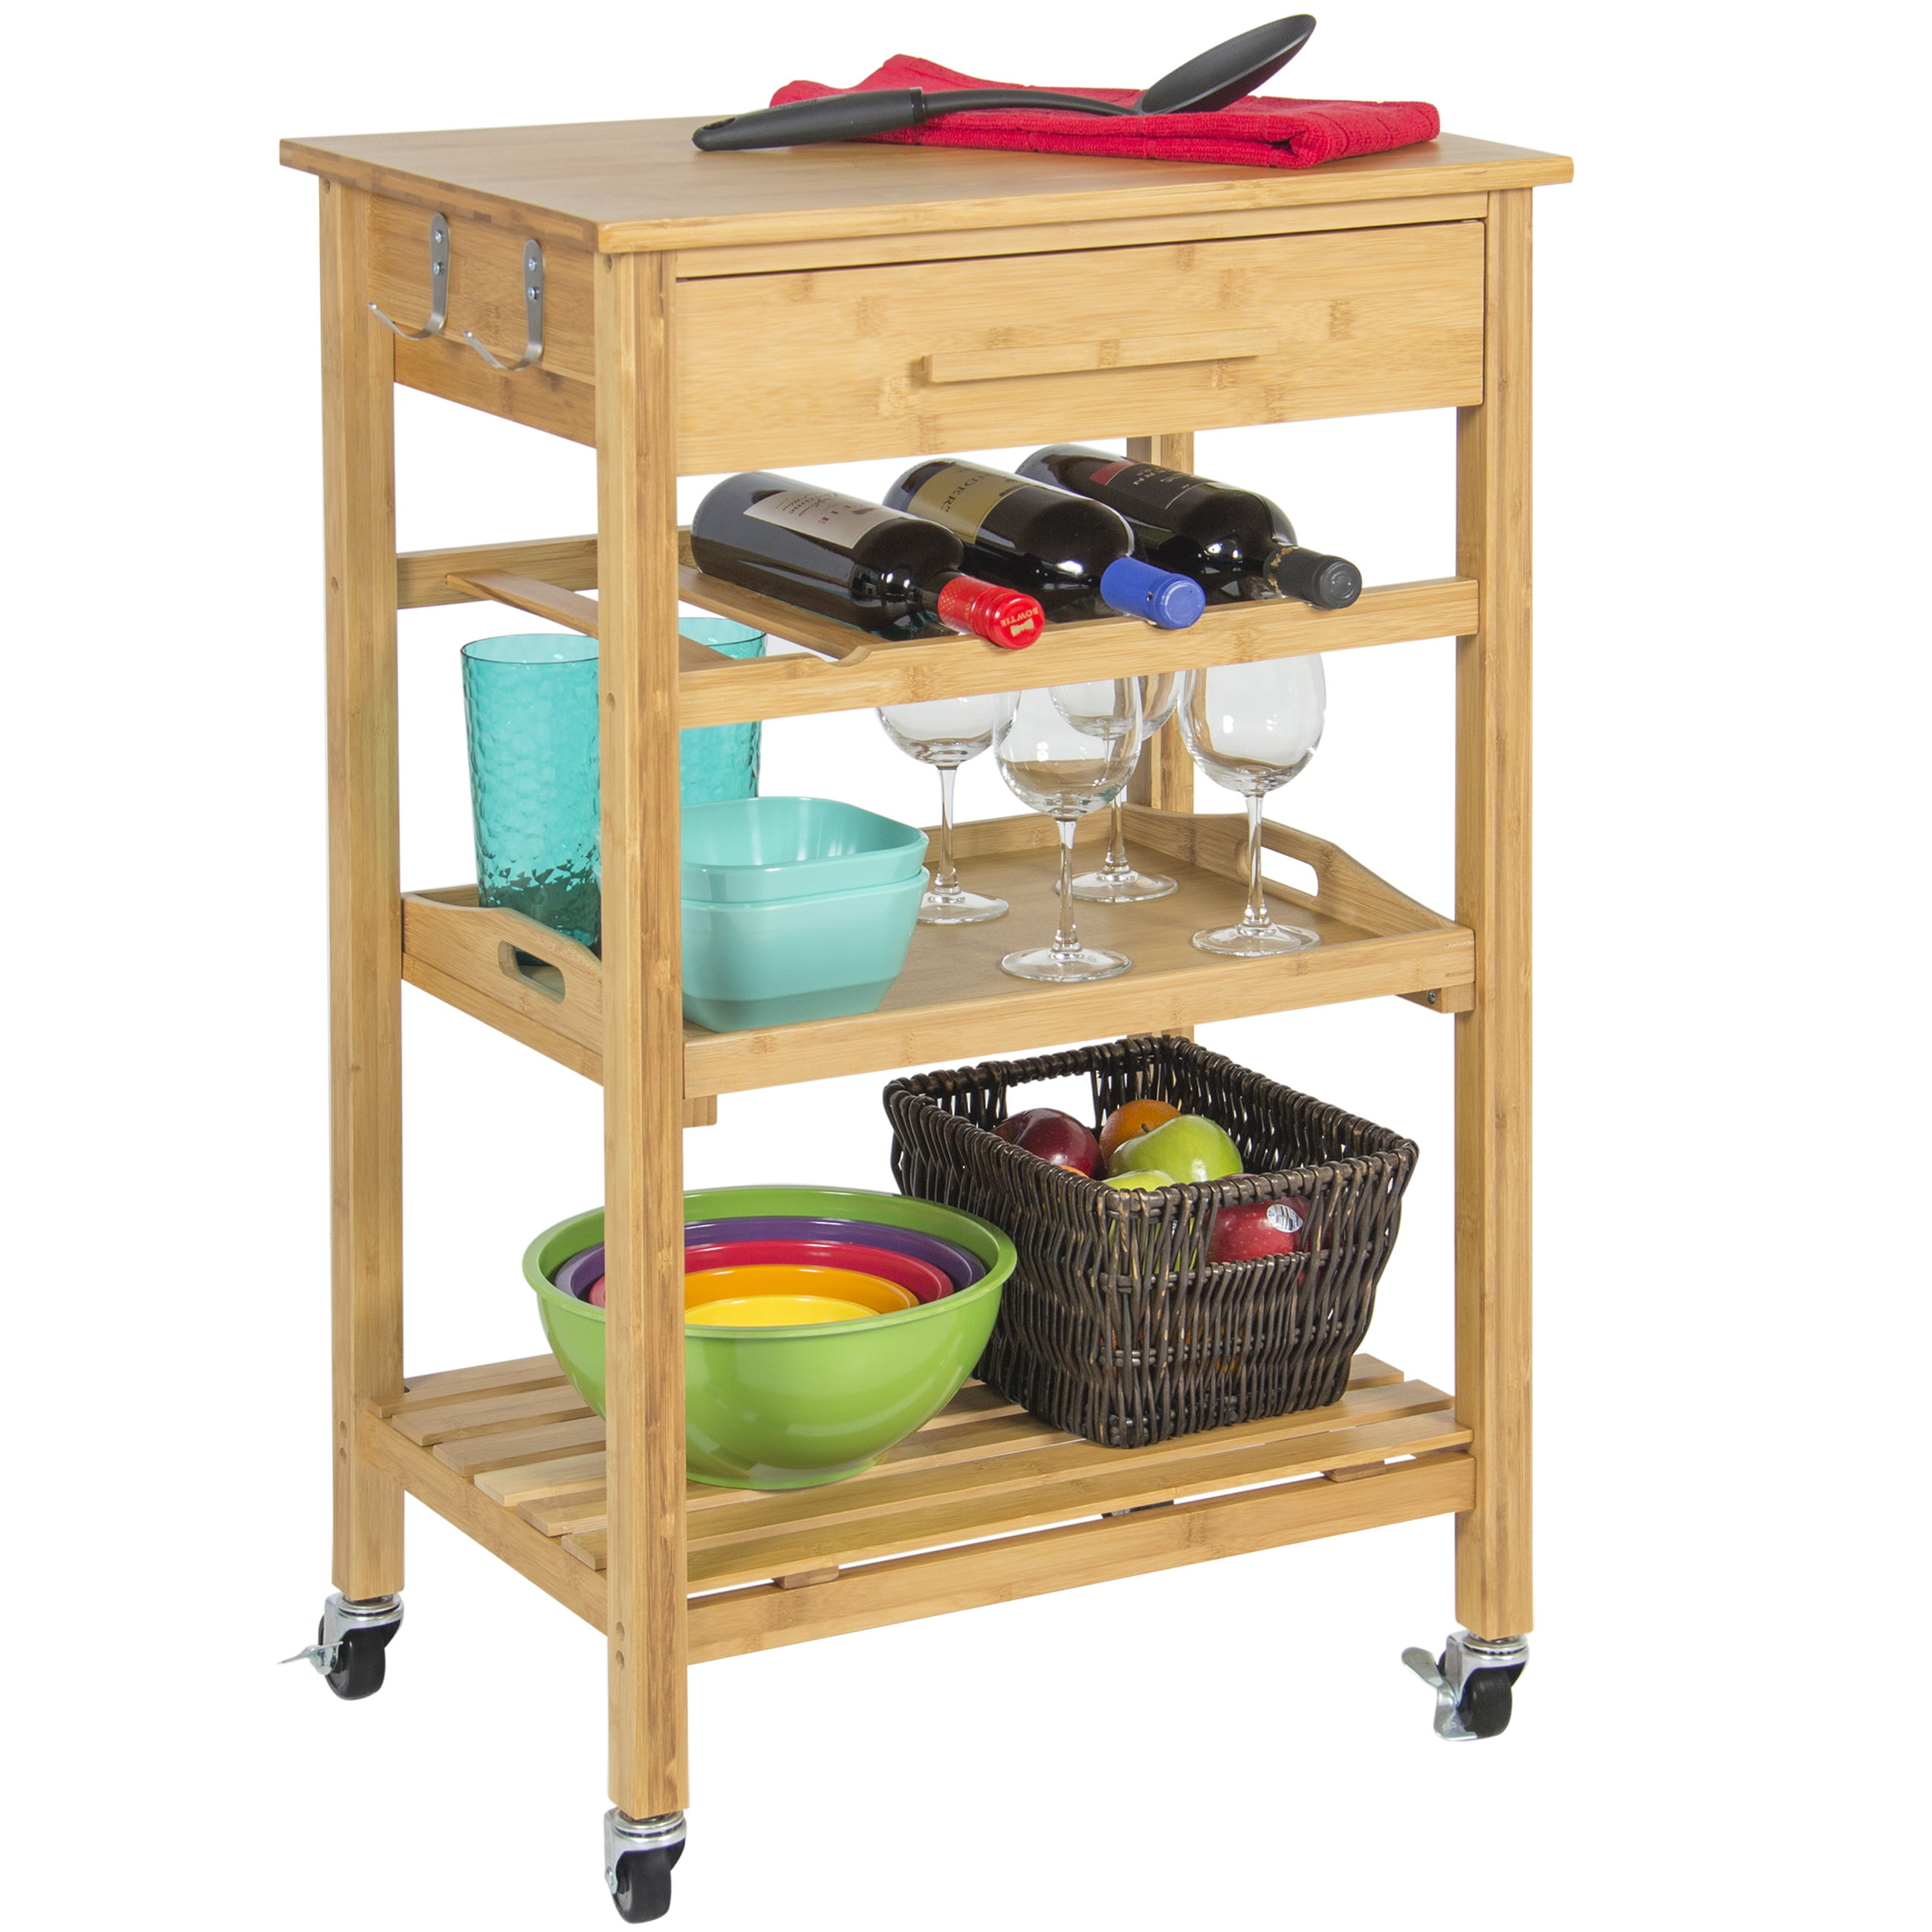 Kitchen Rack Rolling Wood Kitchen Storage Cart Rack With Drawer Shelves Home